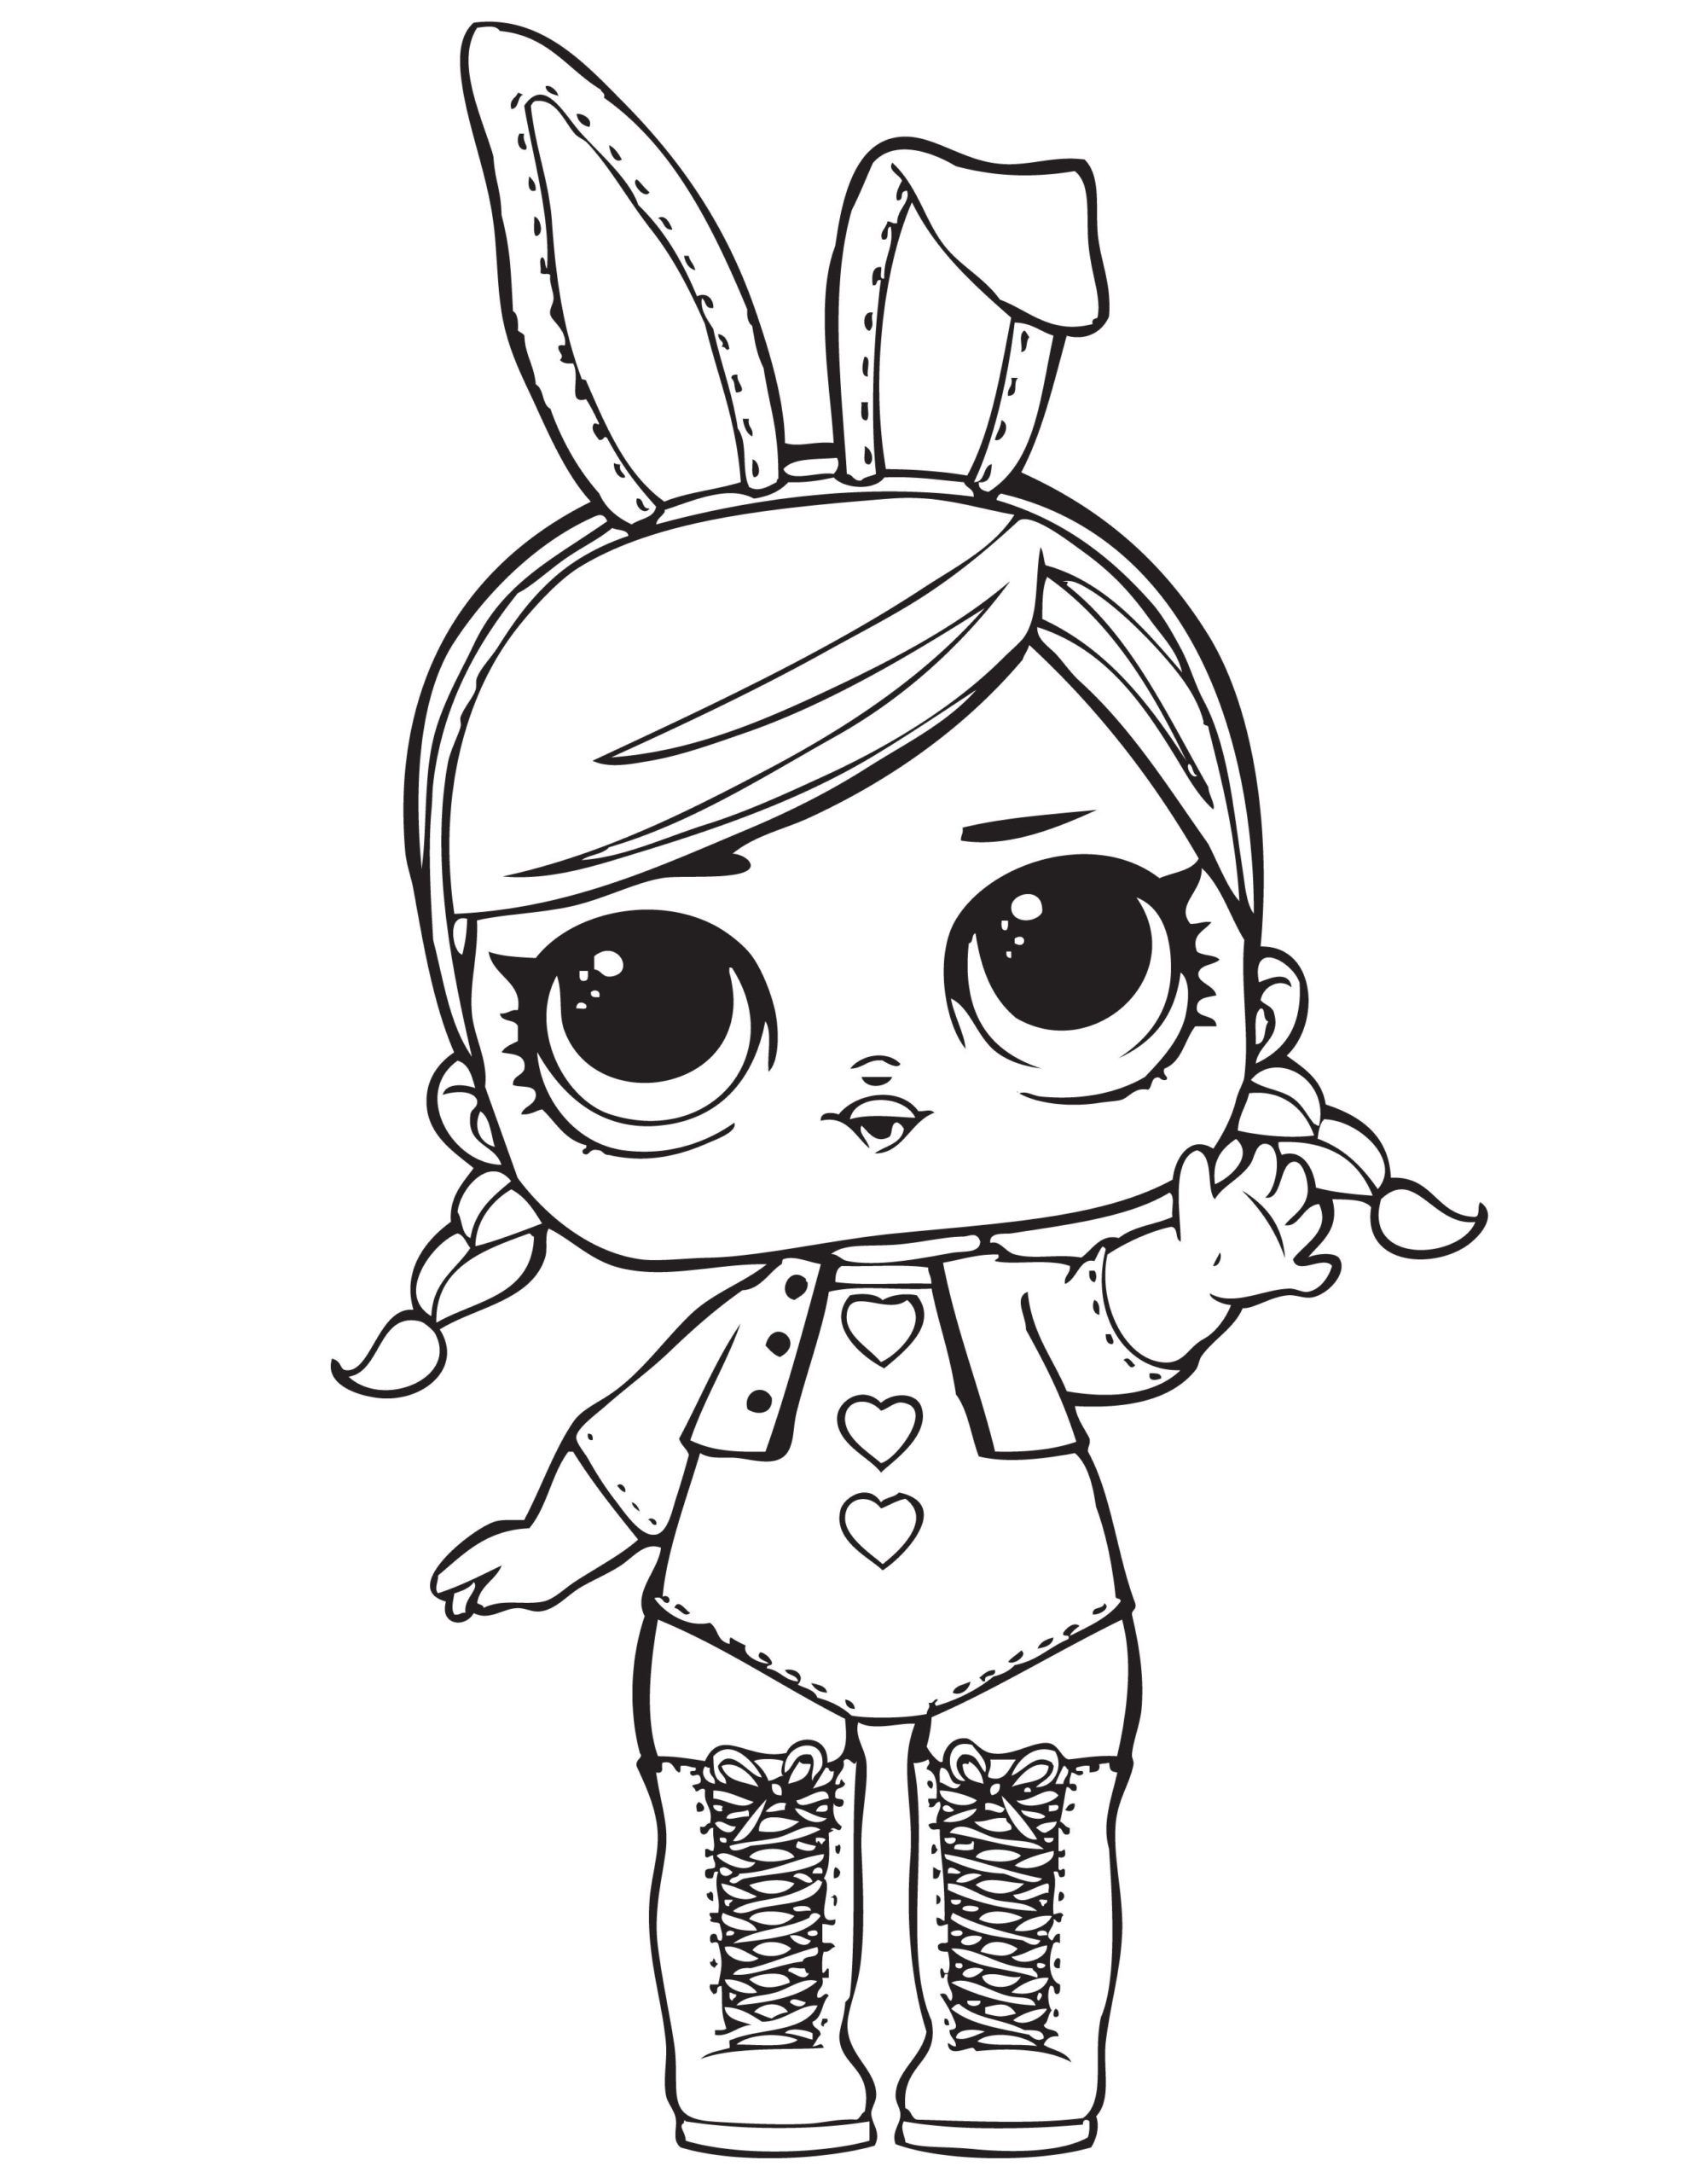 Christmas Lol Doll Coloring Pages Animal Coloring Pages Cartoon Coloring Pages Unicorn Coloring Pages